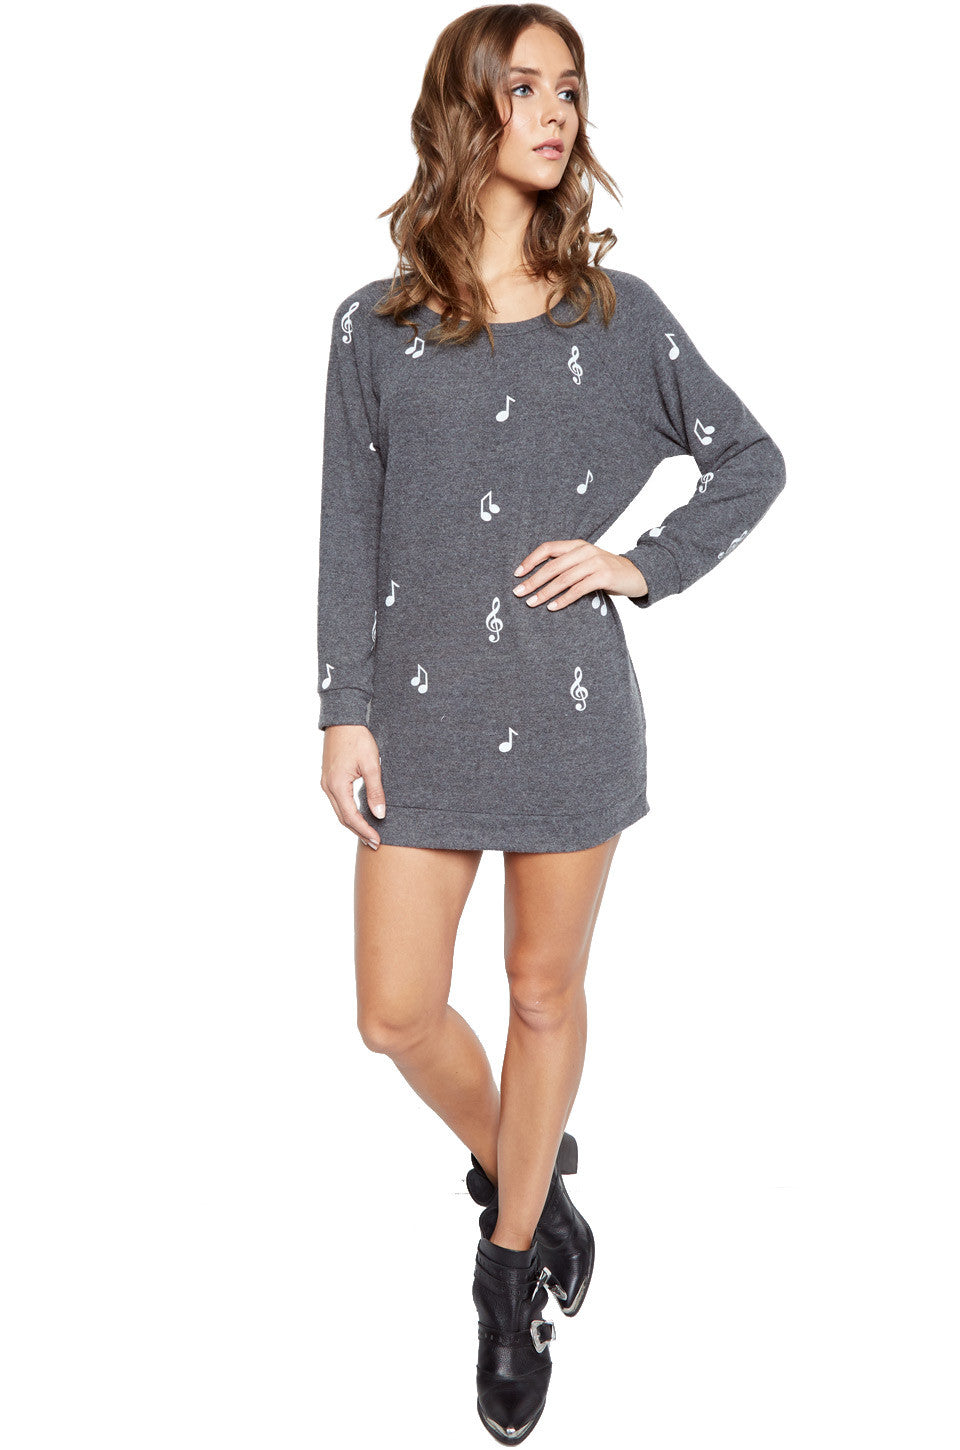 Lauren Moshi Women's Bel Allover Music Notes L/S Pullover Sweatshirt Dress - Black